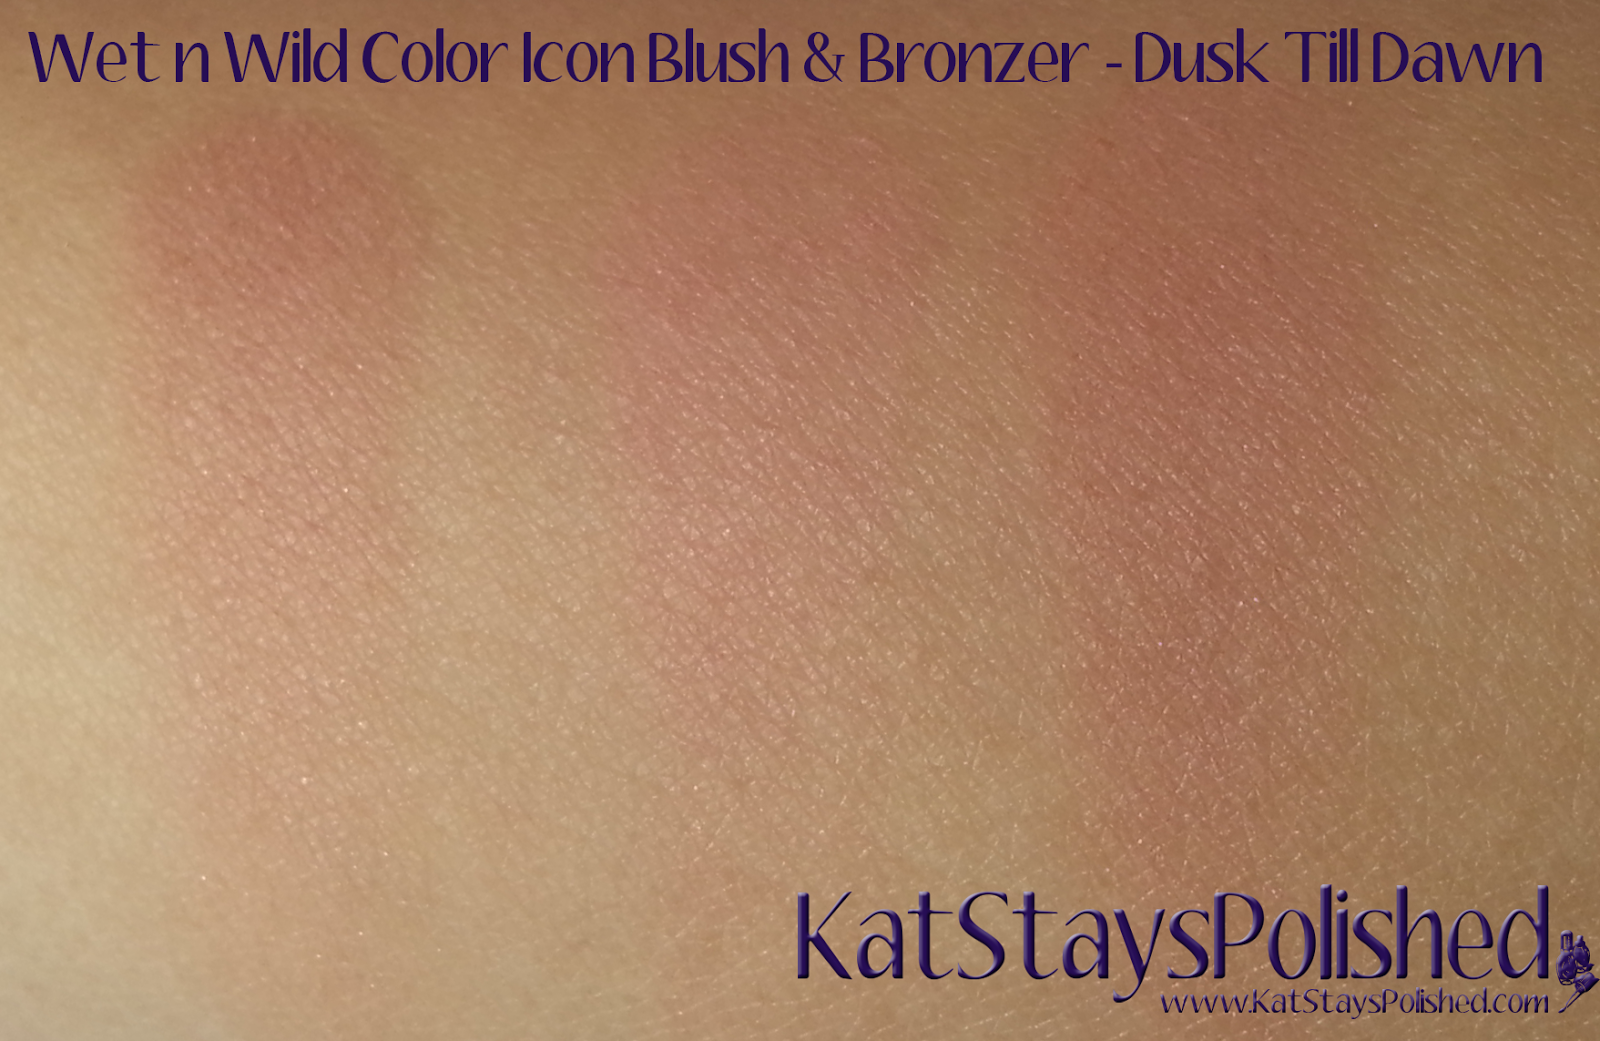 Wet n Wild ColorIcon Bronzer & Blush - Summer 2014 - Dusk Till Dawn | Kat Stays Polished